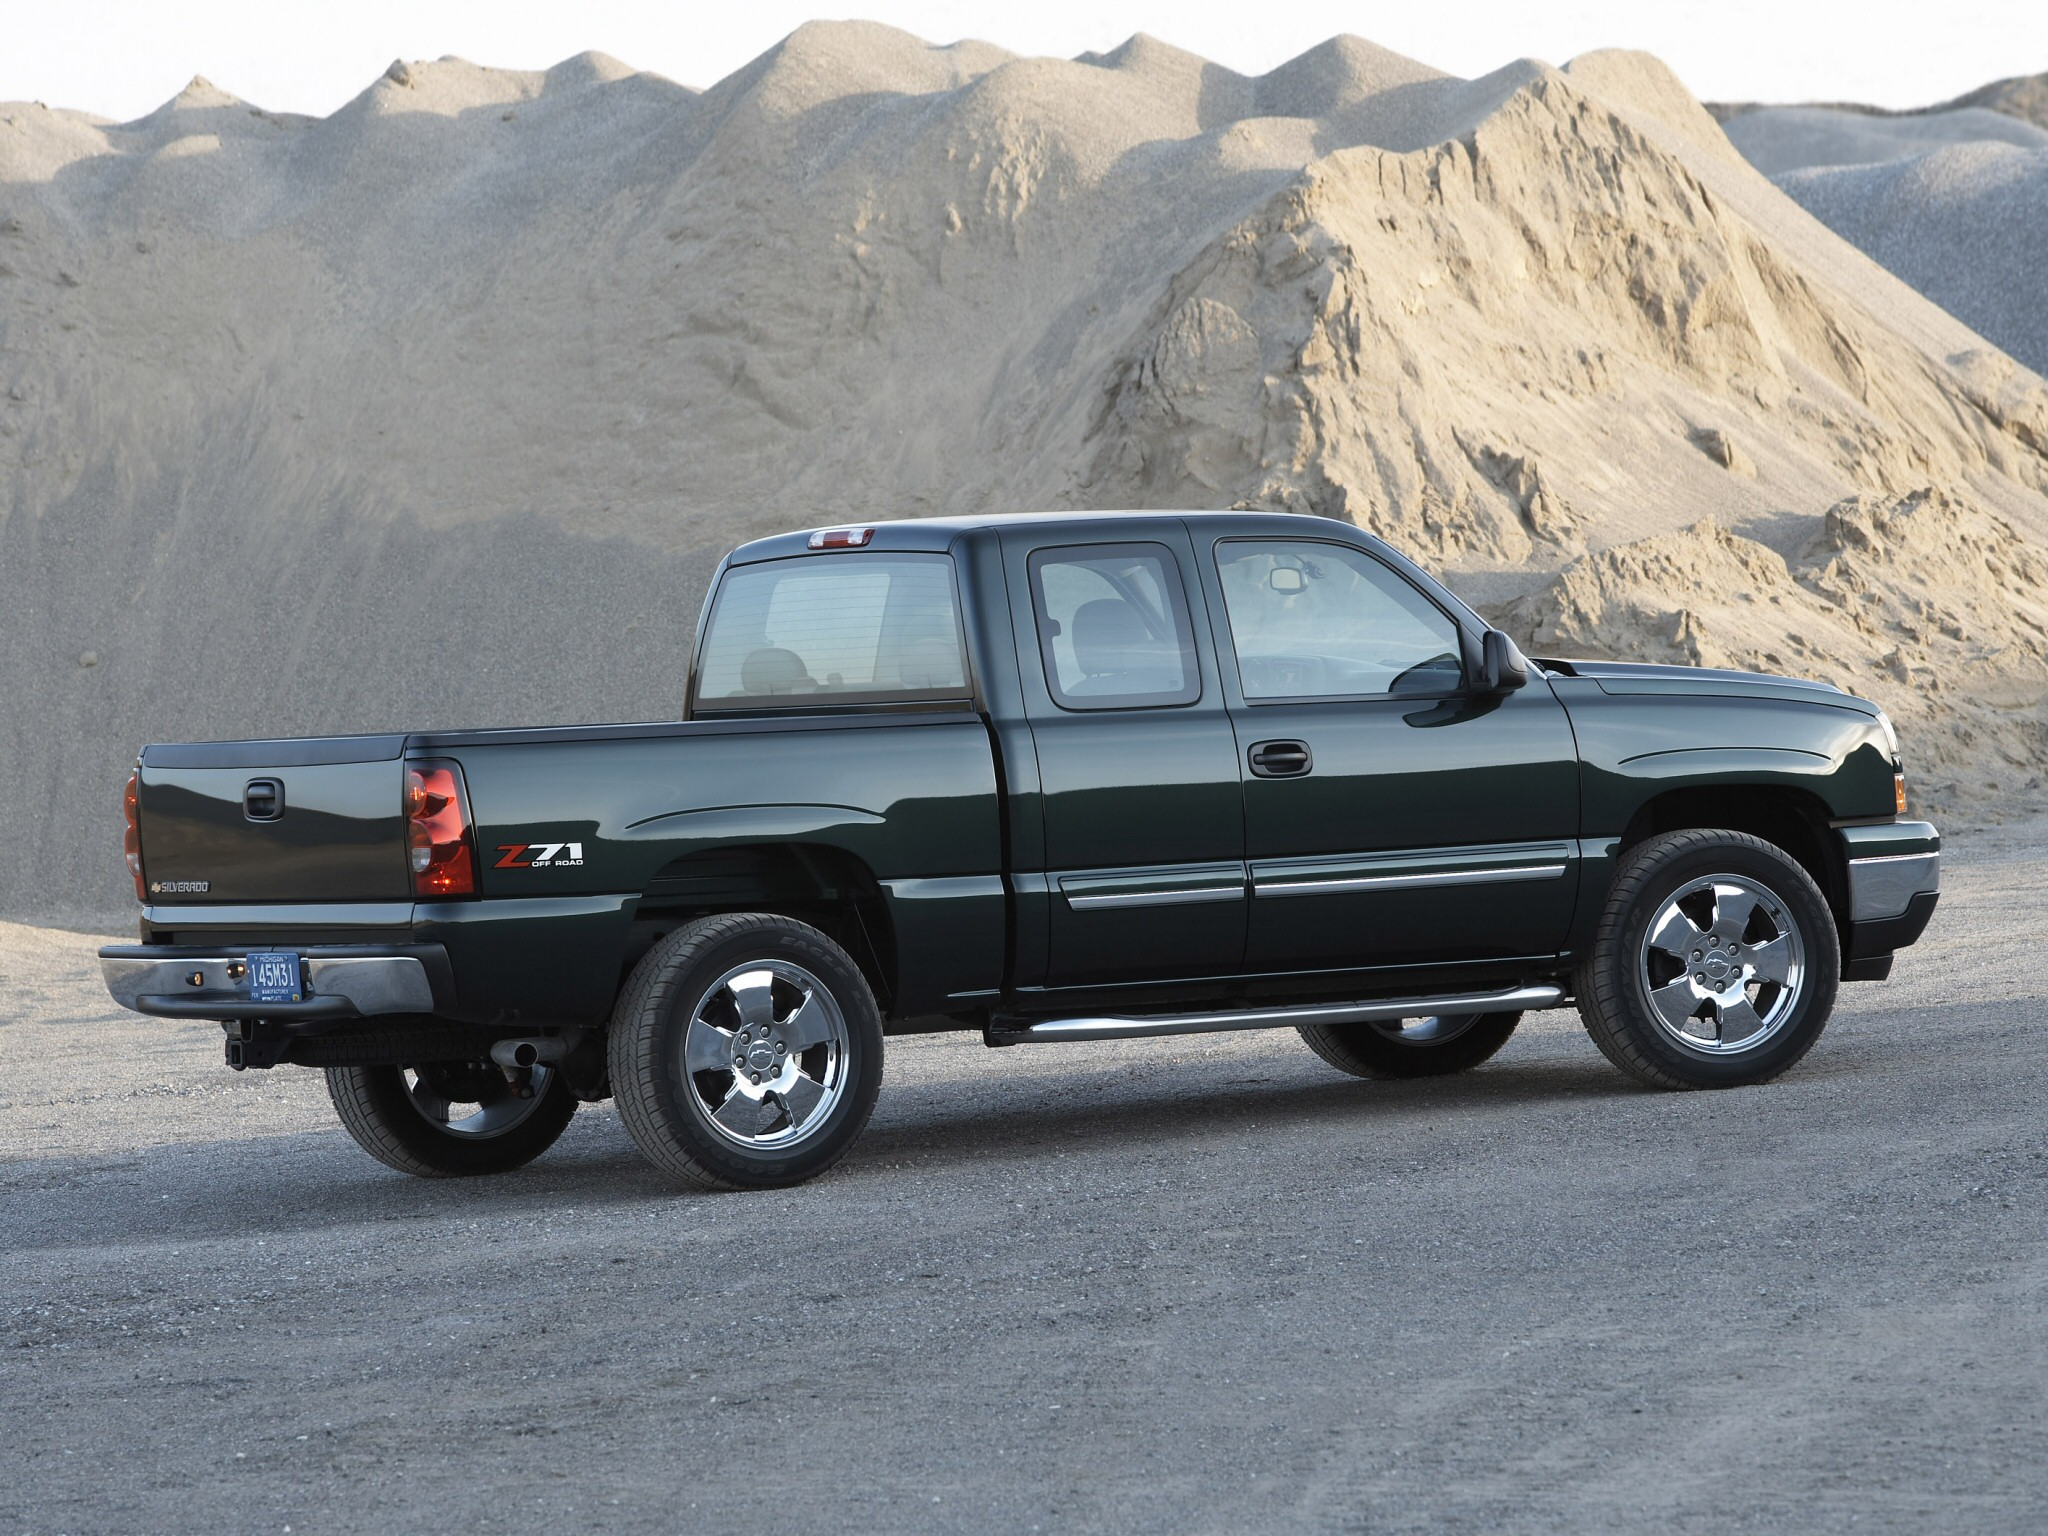 chevy z71 wallpapers - photo #15